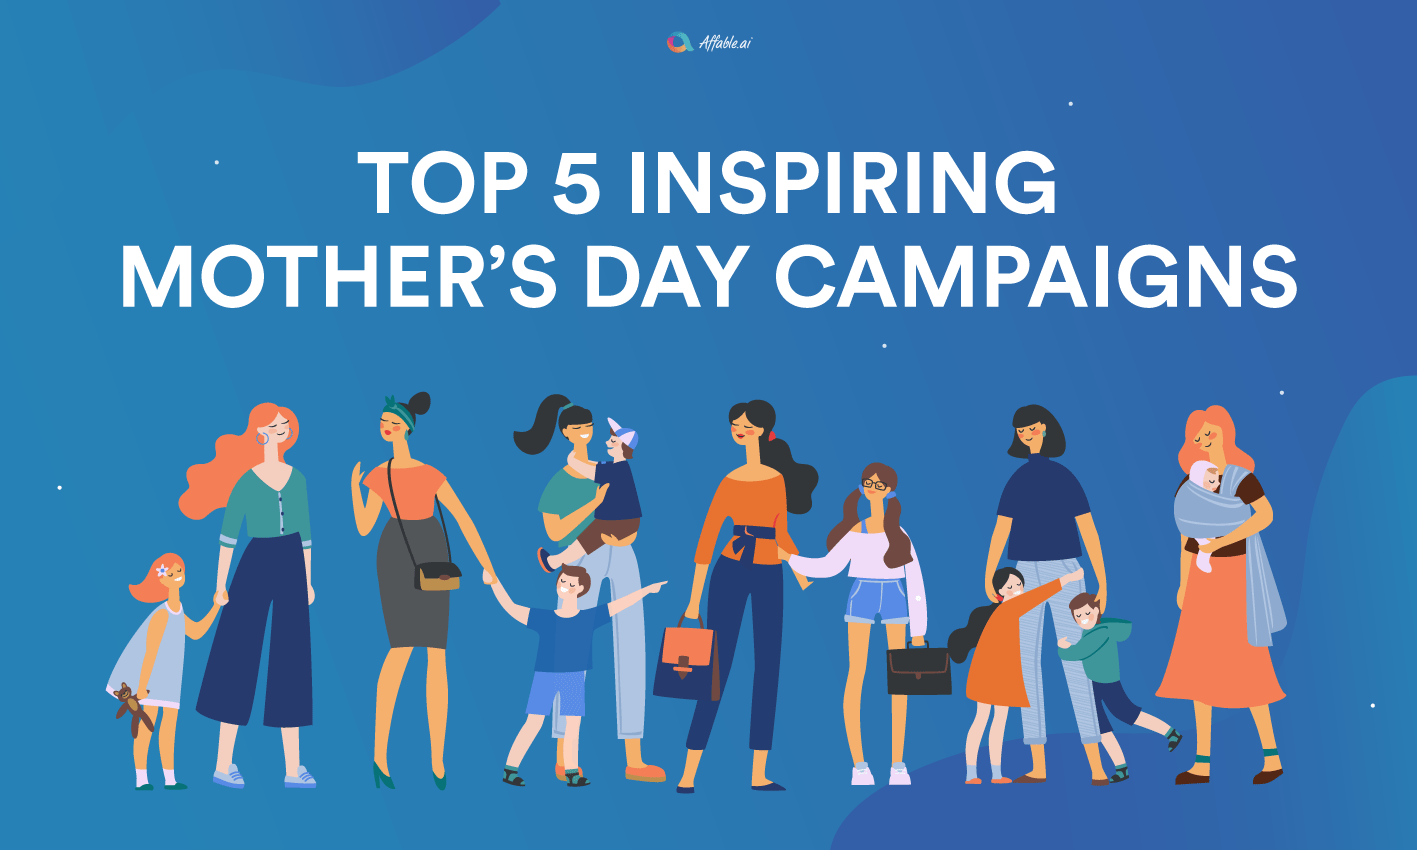 Most Inspiring Mother's Day Campaigns For Your Brand